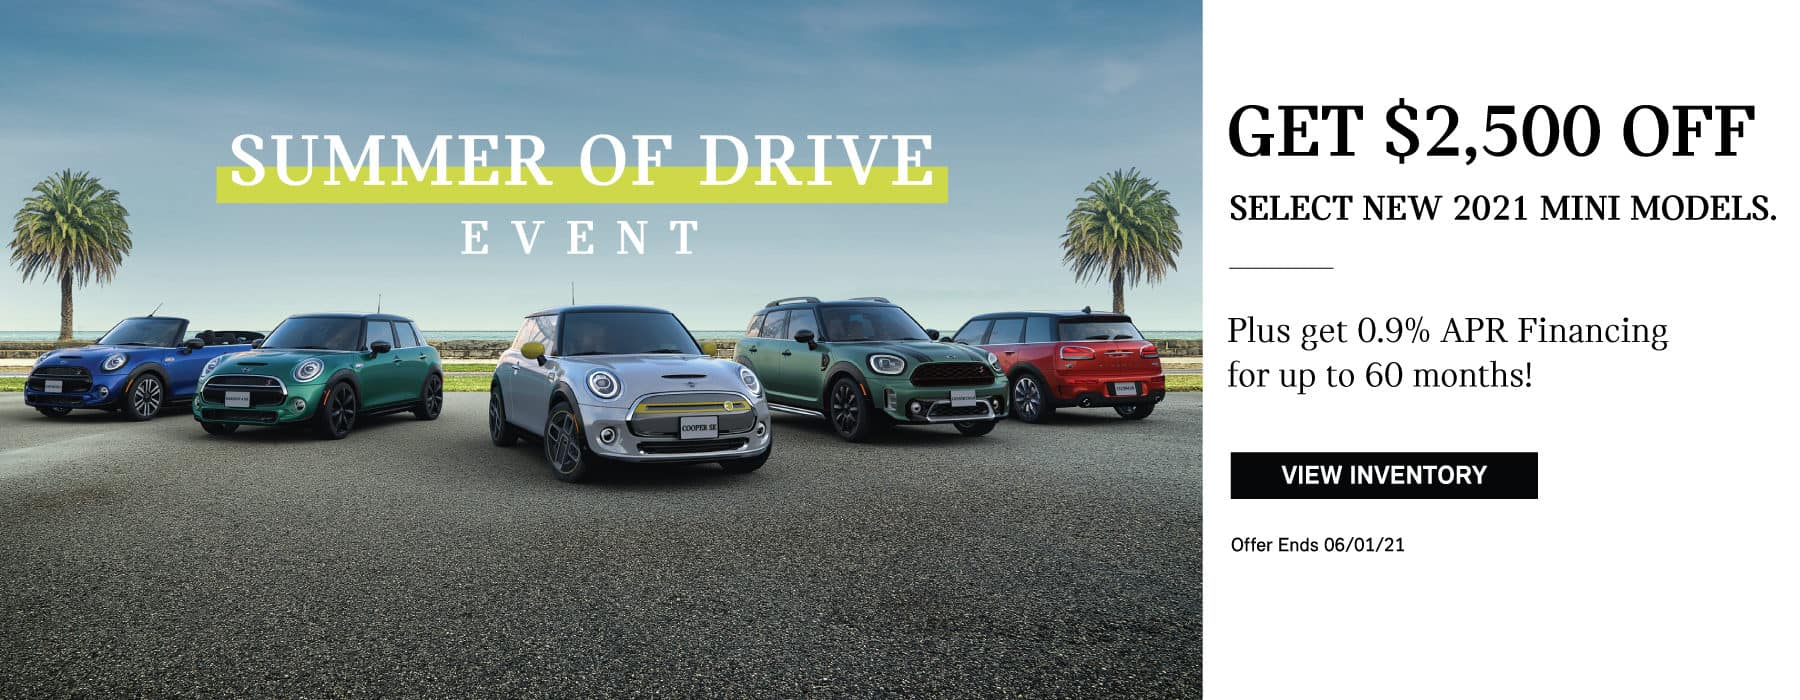 Get $2,500 Off select new 2021 MINI models. Plus 0.9% Financing for up to 36 months. Click to view inventory. Offer ends June1st, 2021